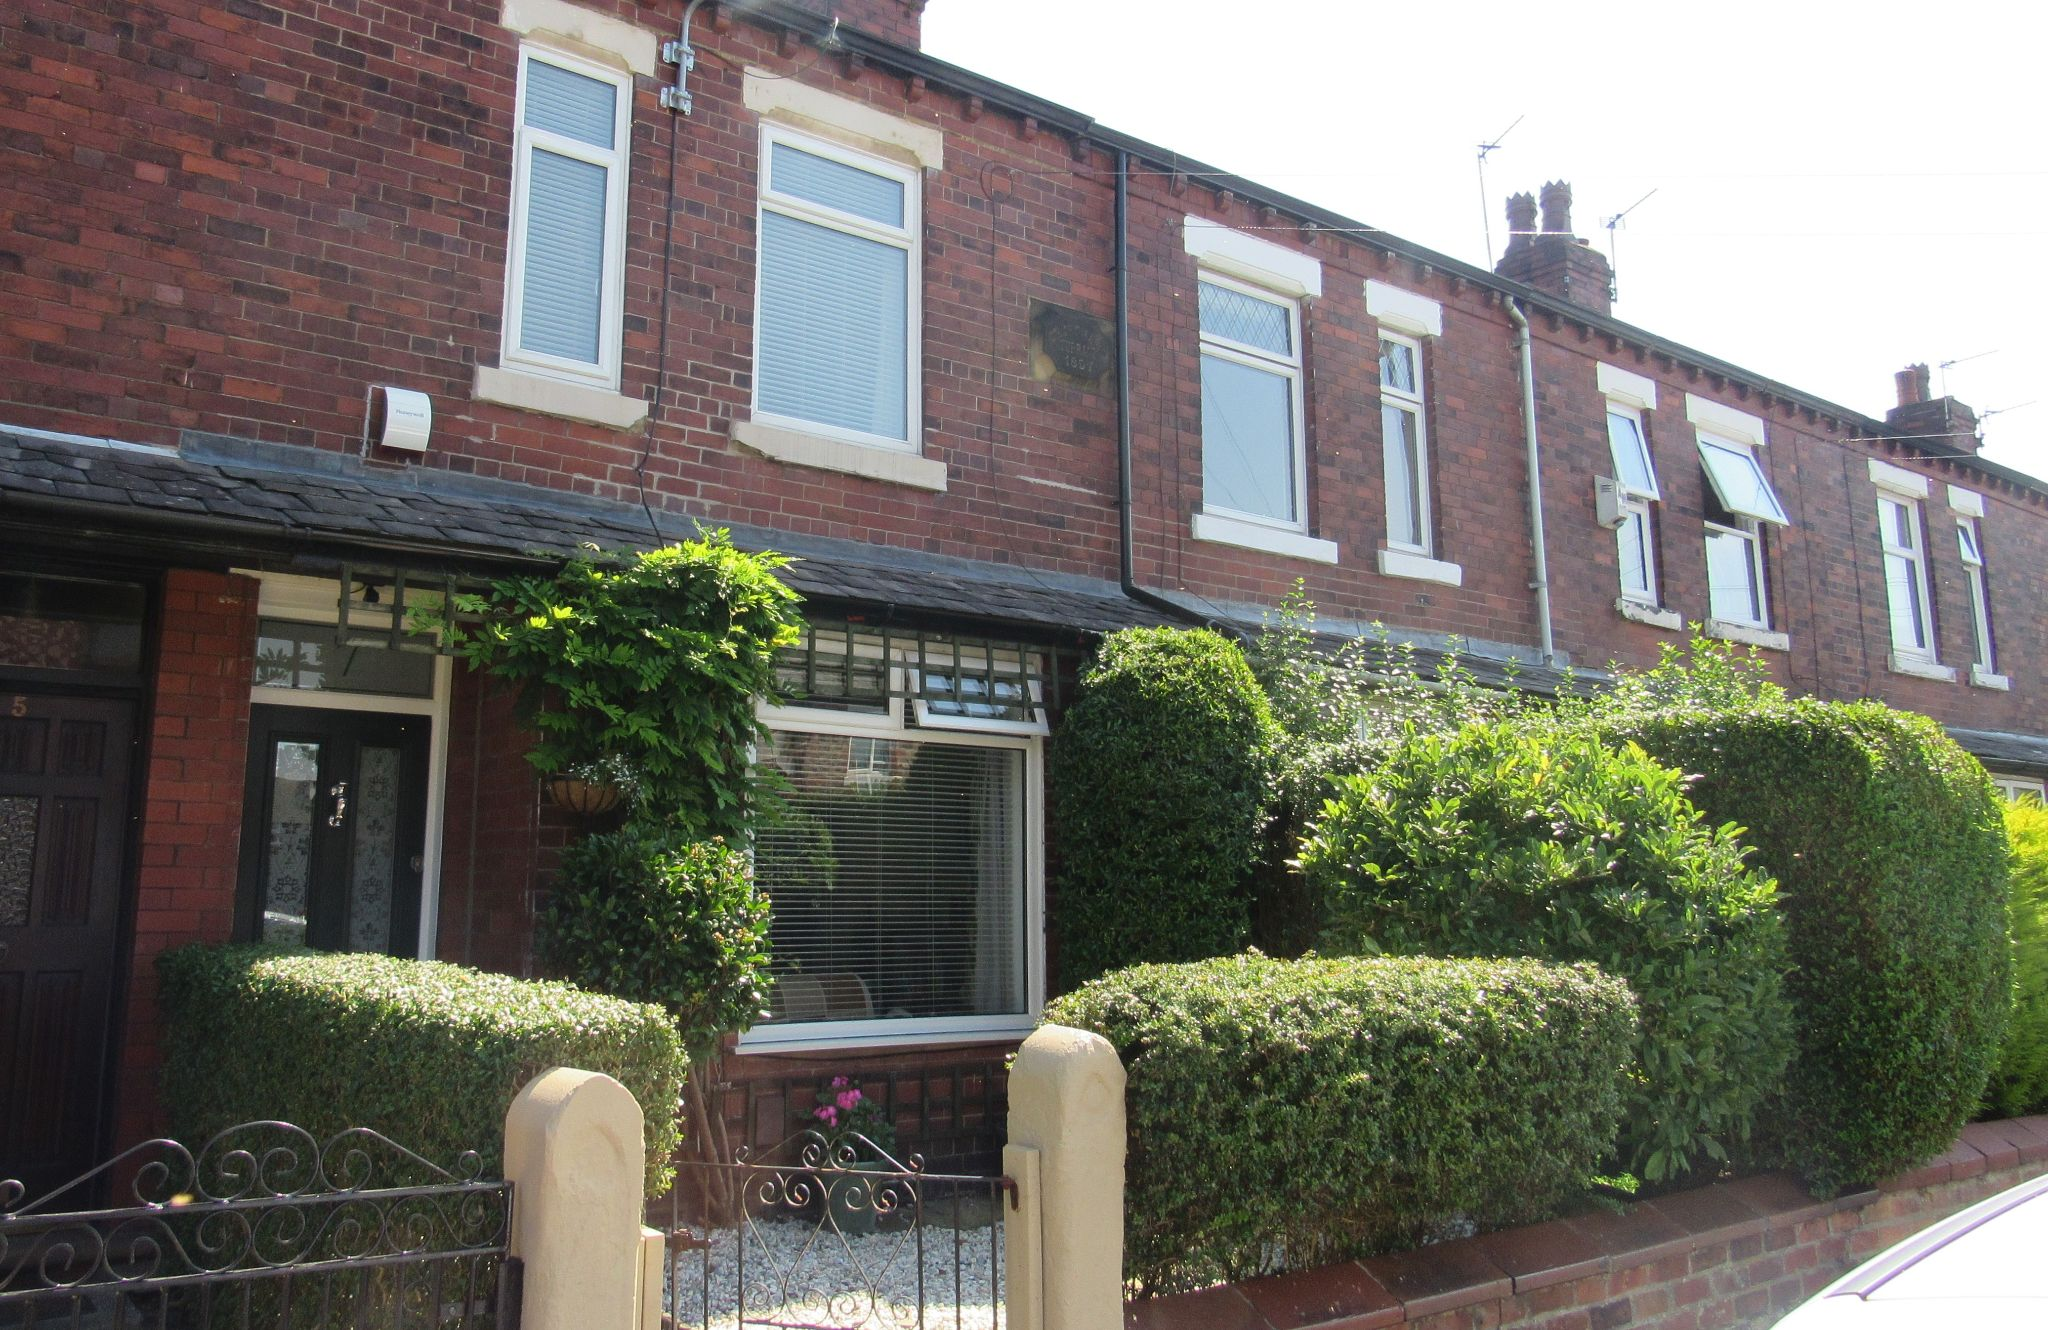 2 bedroom mid terraced house SSTC in Manchester - Photograph 2.